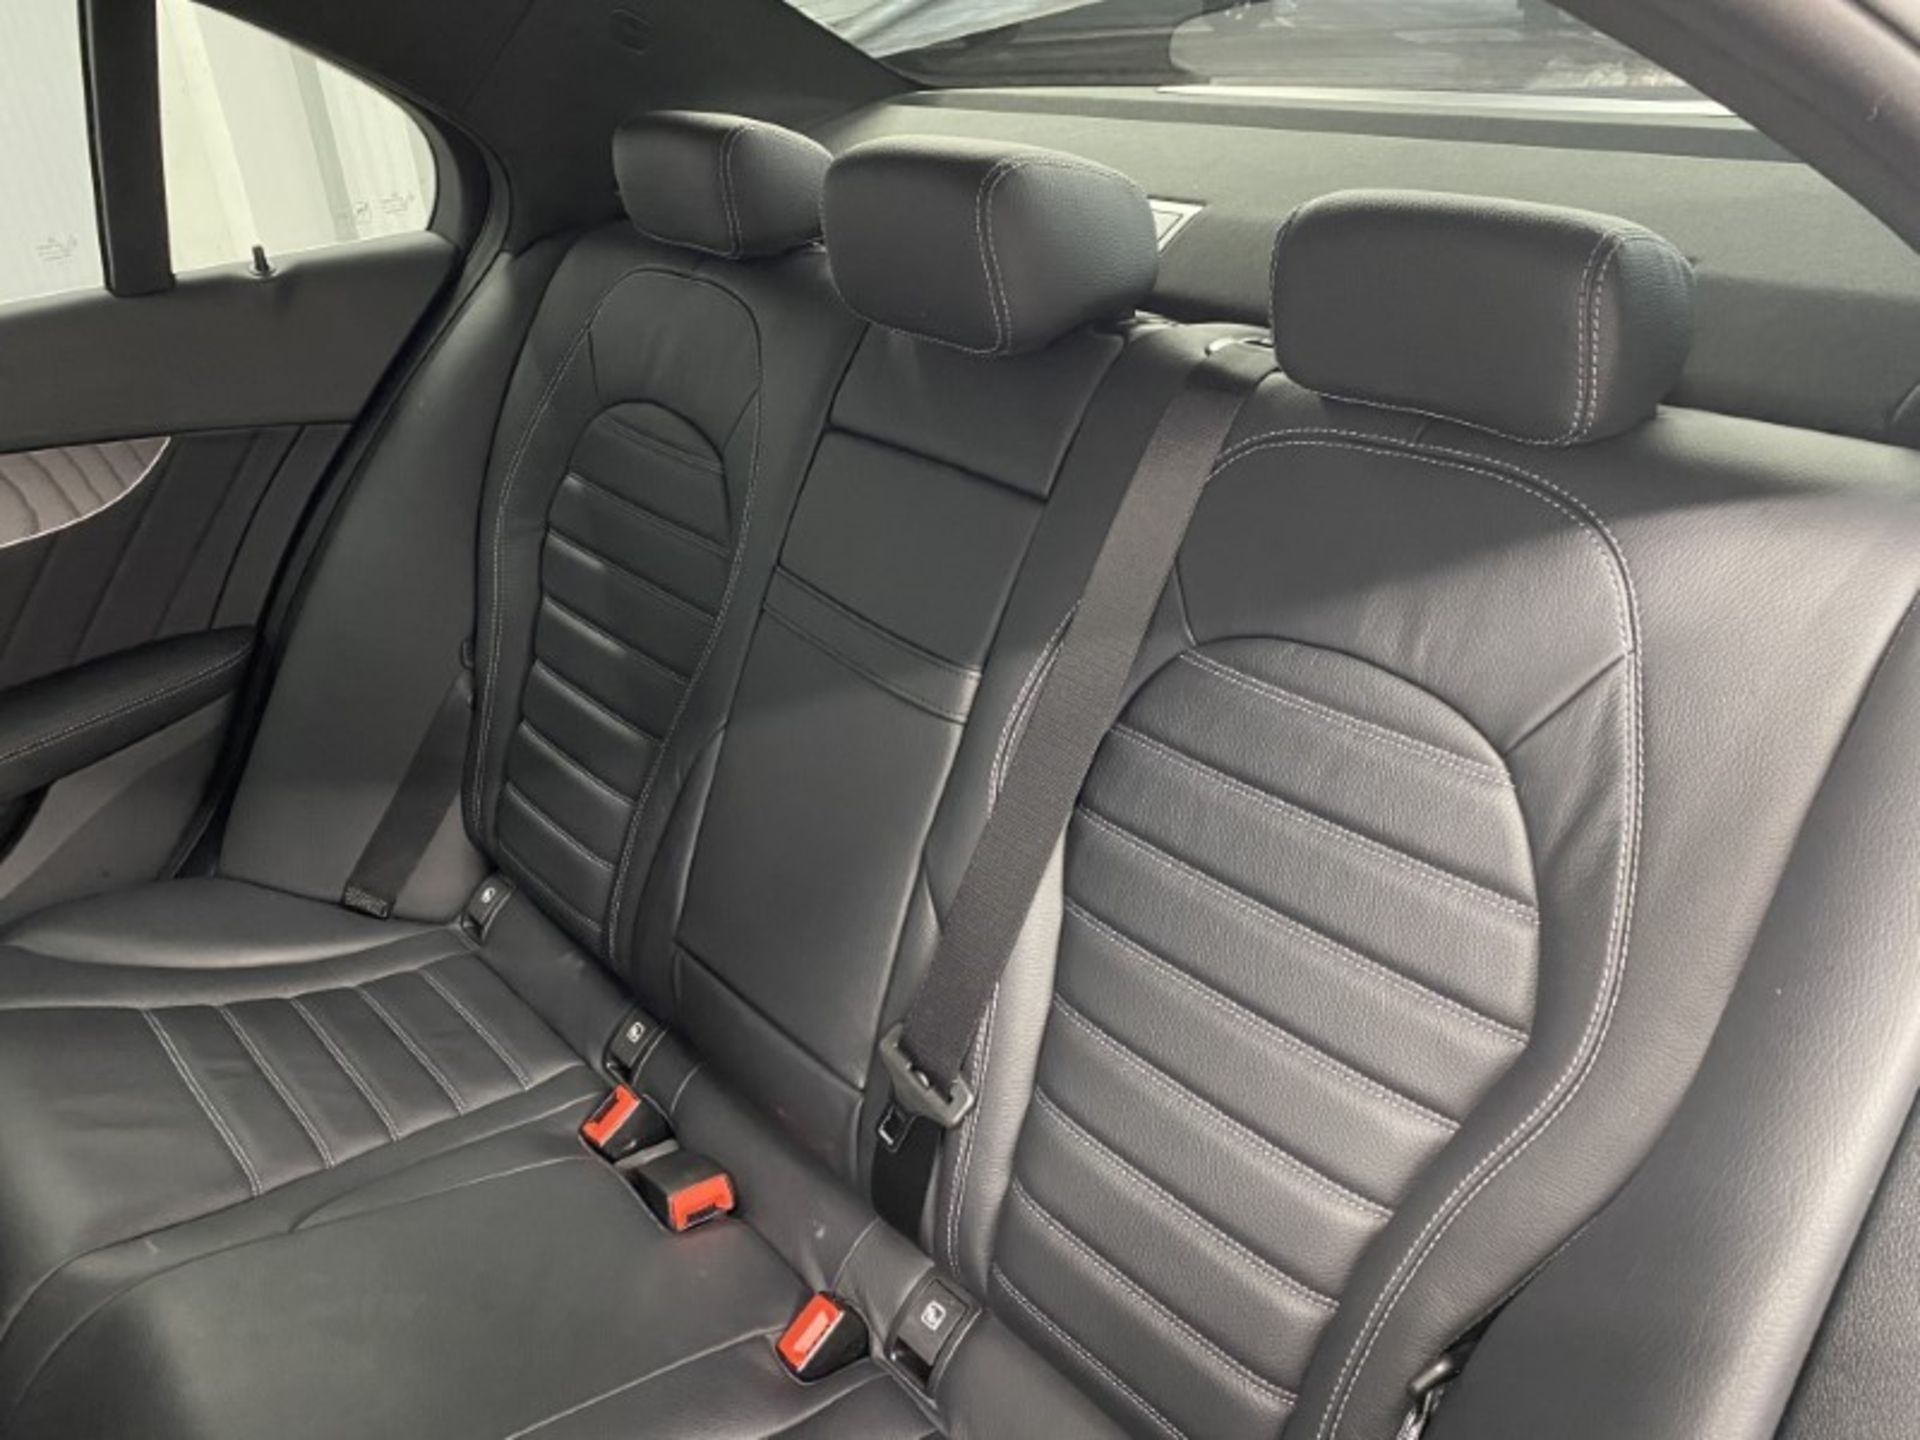 MERCEDES-BENZ C220d *AMG LINE - PREMIUM* SALOON (2021 MODEL) '9-G TRONIC' *LEATHER & NAV* (1 OWNER) - Image 7 of 7